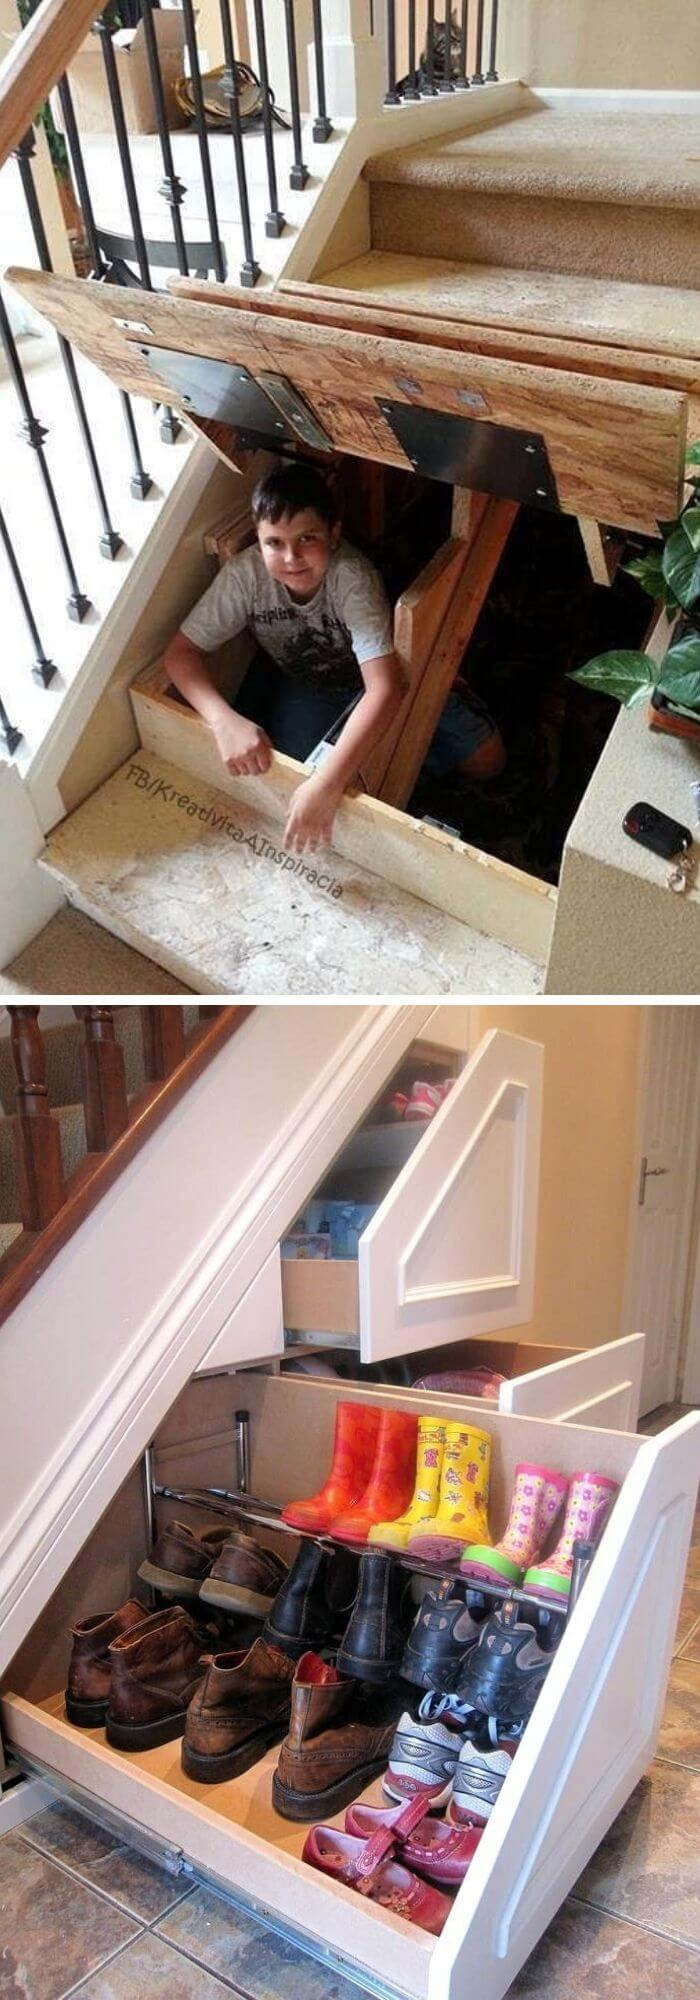 Use the space under the stairs for storage